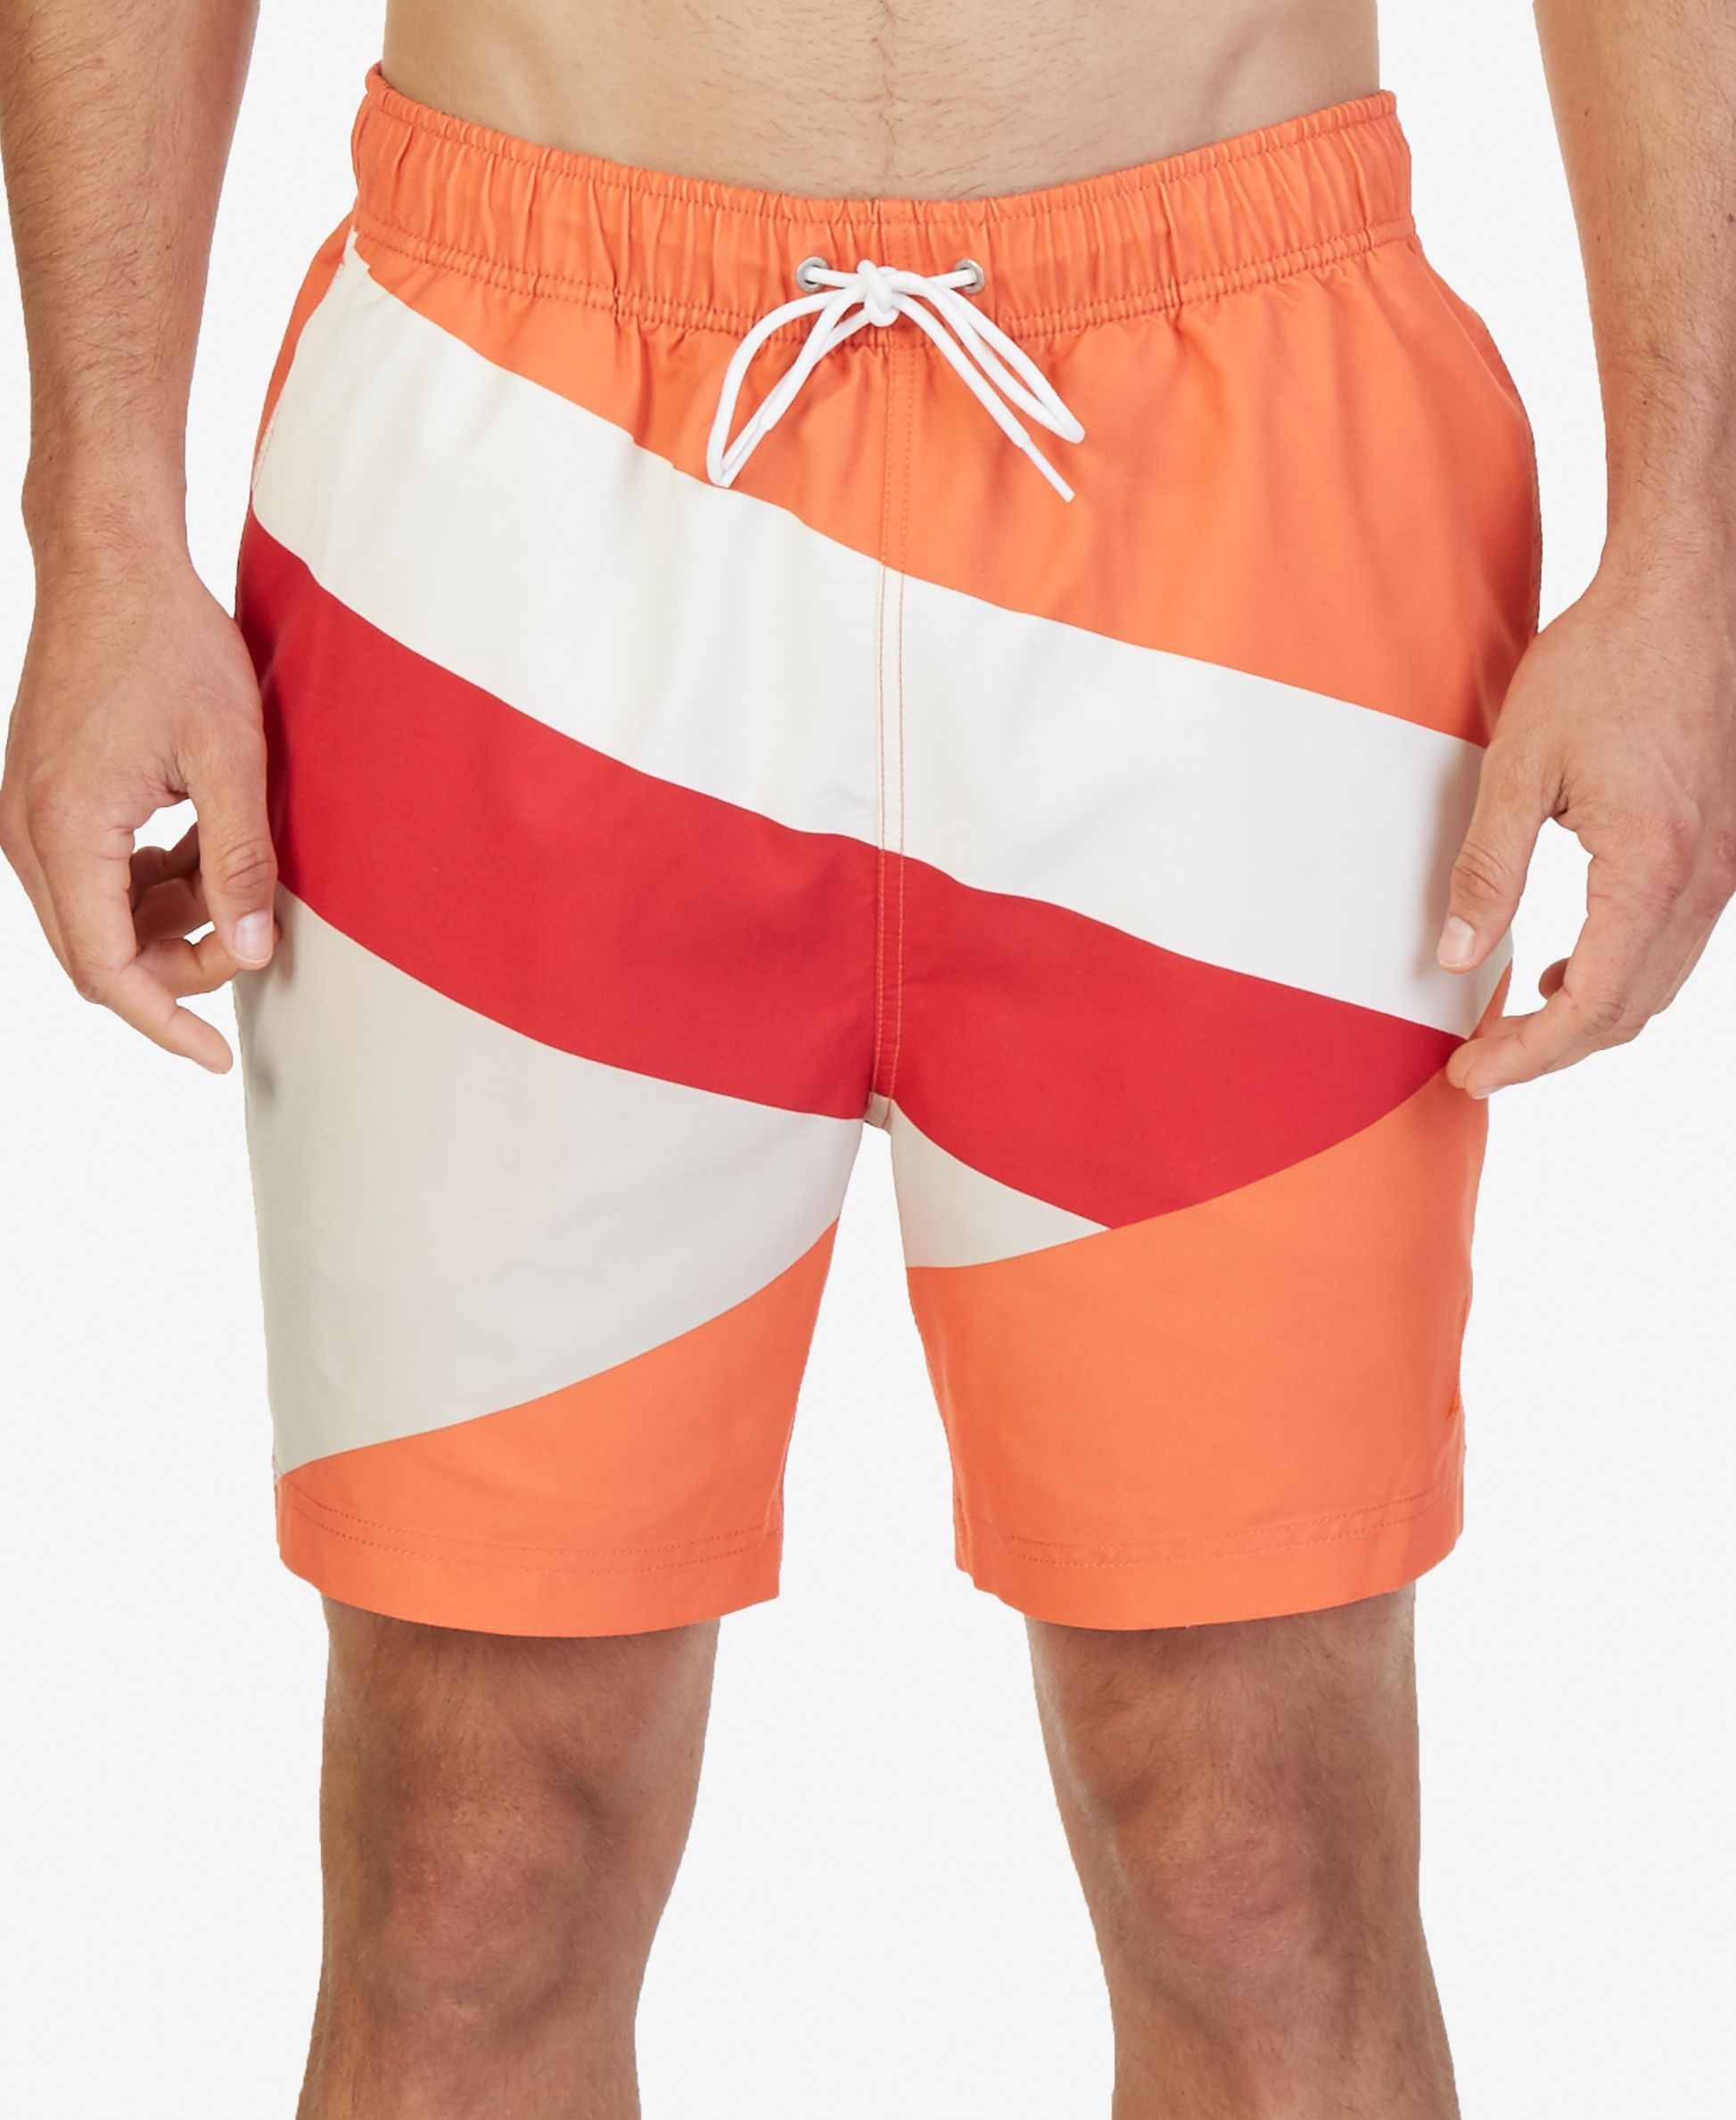 e7f0b663c9 A diagonally colorblocked design gives these Nautica swim trunks a modern  look, while the comfortable elastic drawstring waist and Quick Dry fabric  add ...